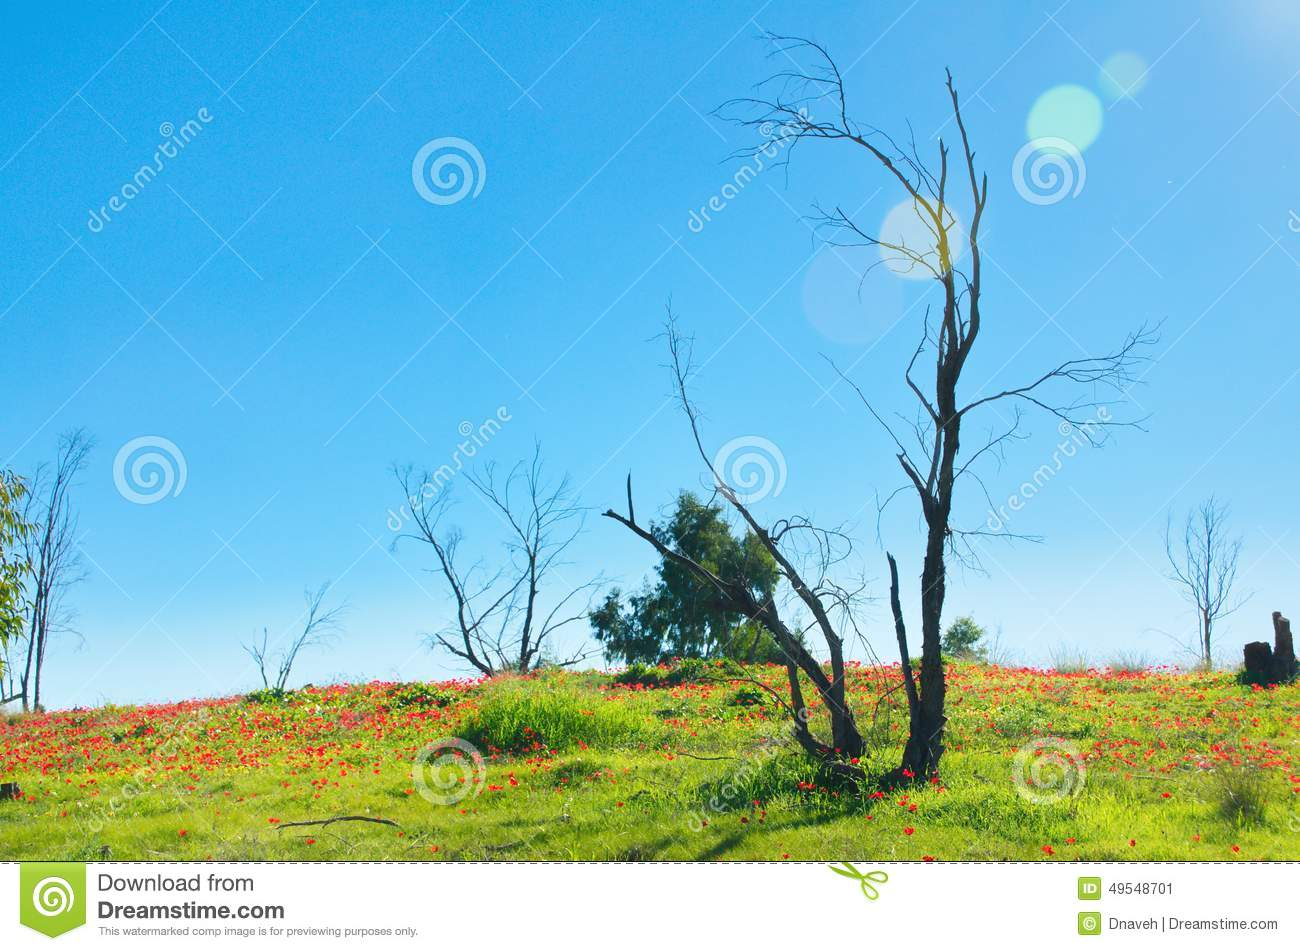 Naked Tree In Field Of Dafodils Stock Image - Image of